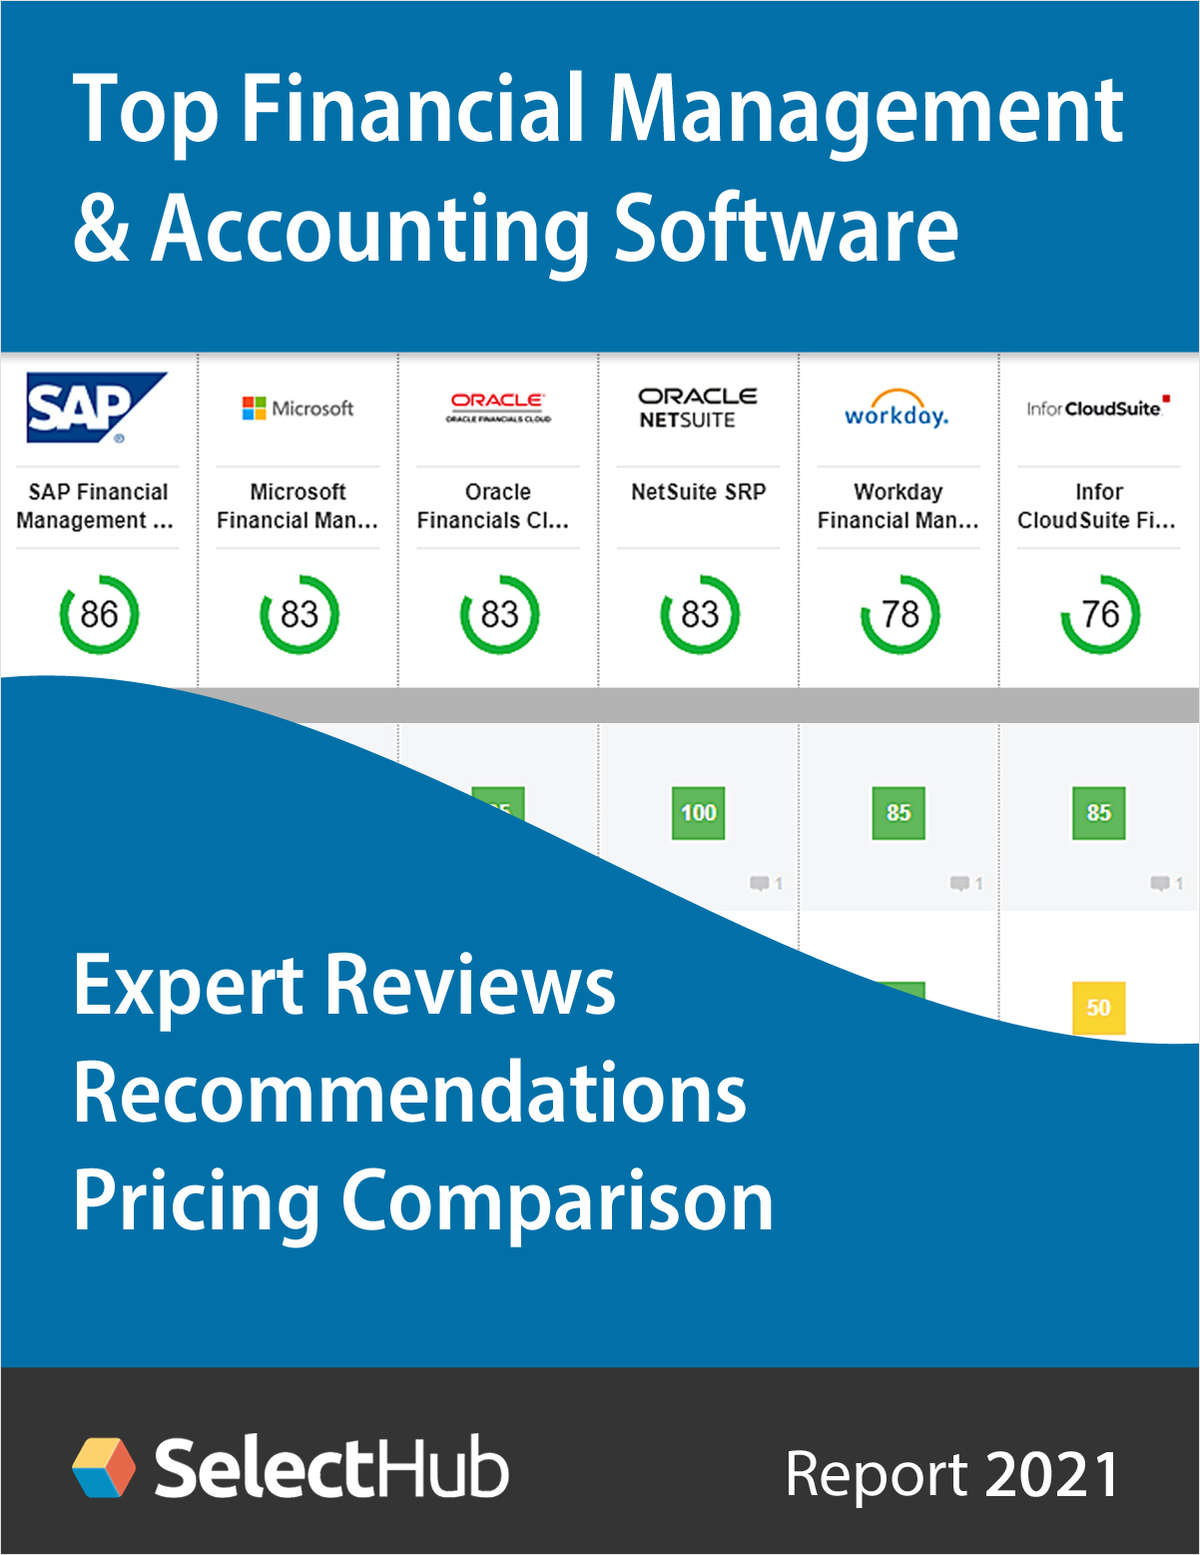 Best Financial Management & Accounting Software--Expert Reviews, Recommendations, Pricing